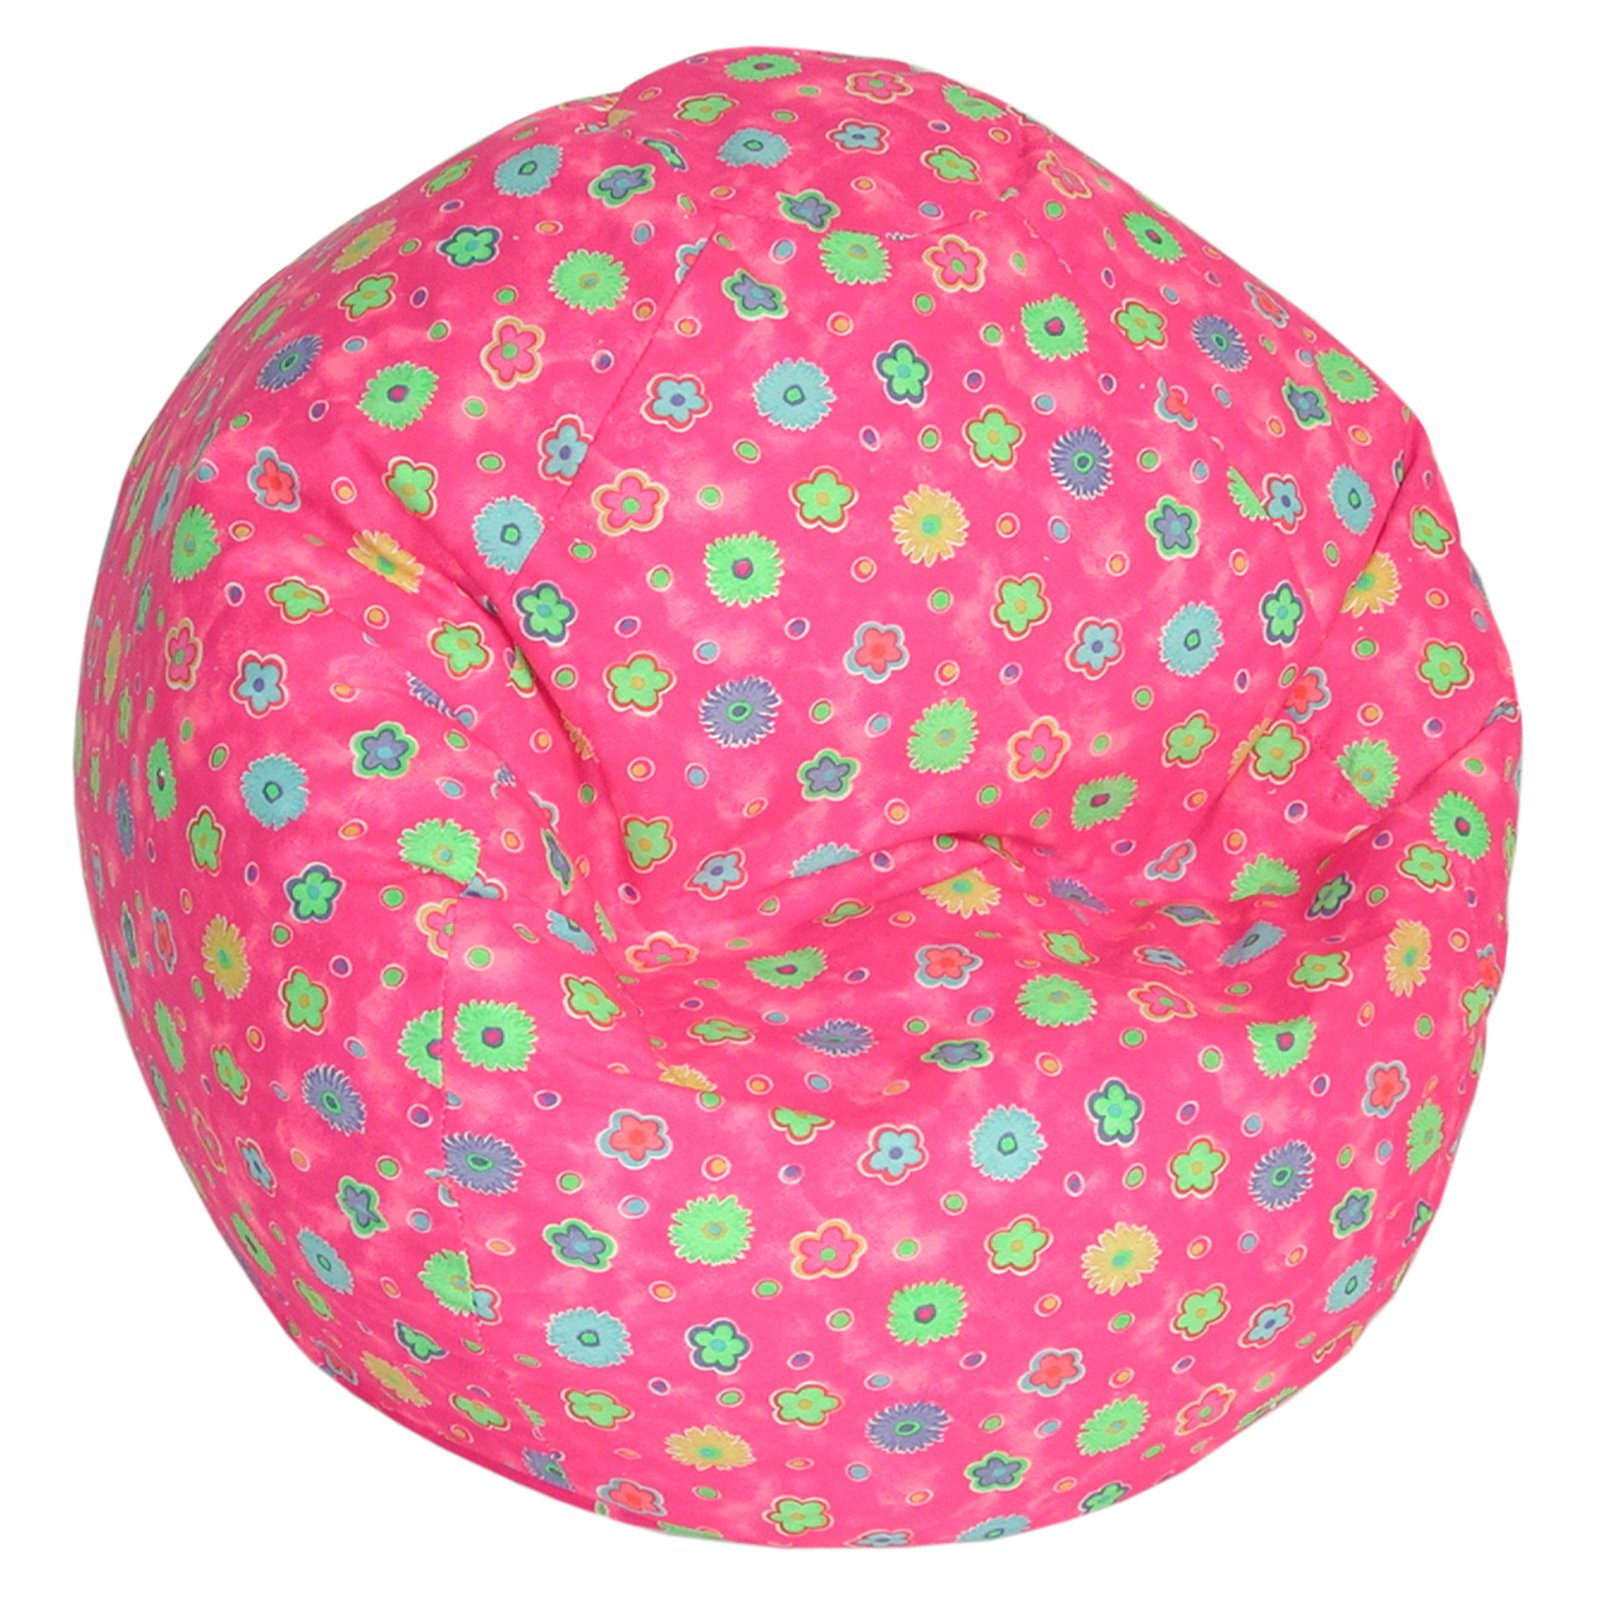 Bean bag chairs for teenage girls - Fun Factory Wetlook Large Bean Bag Pink Flower